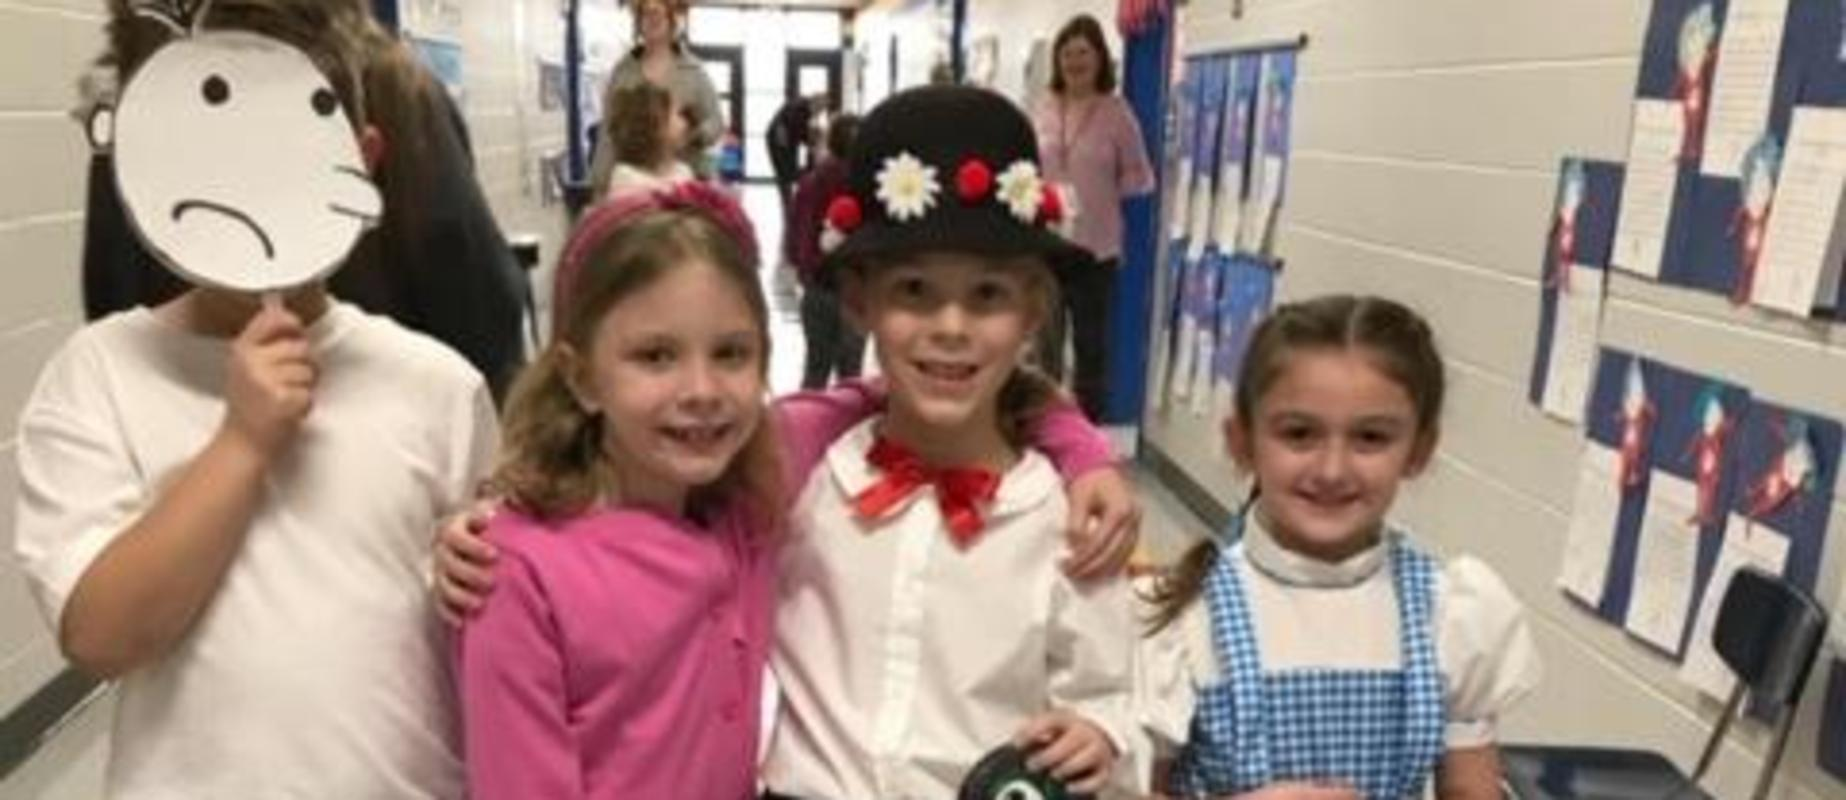 Students dressed as story characters